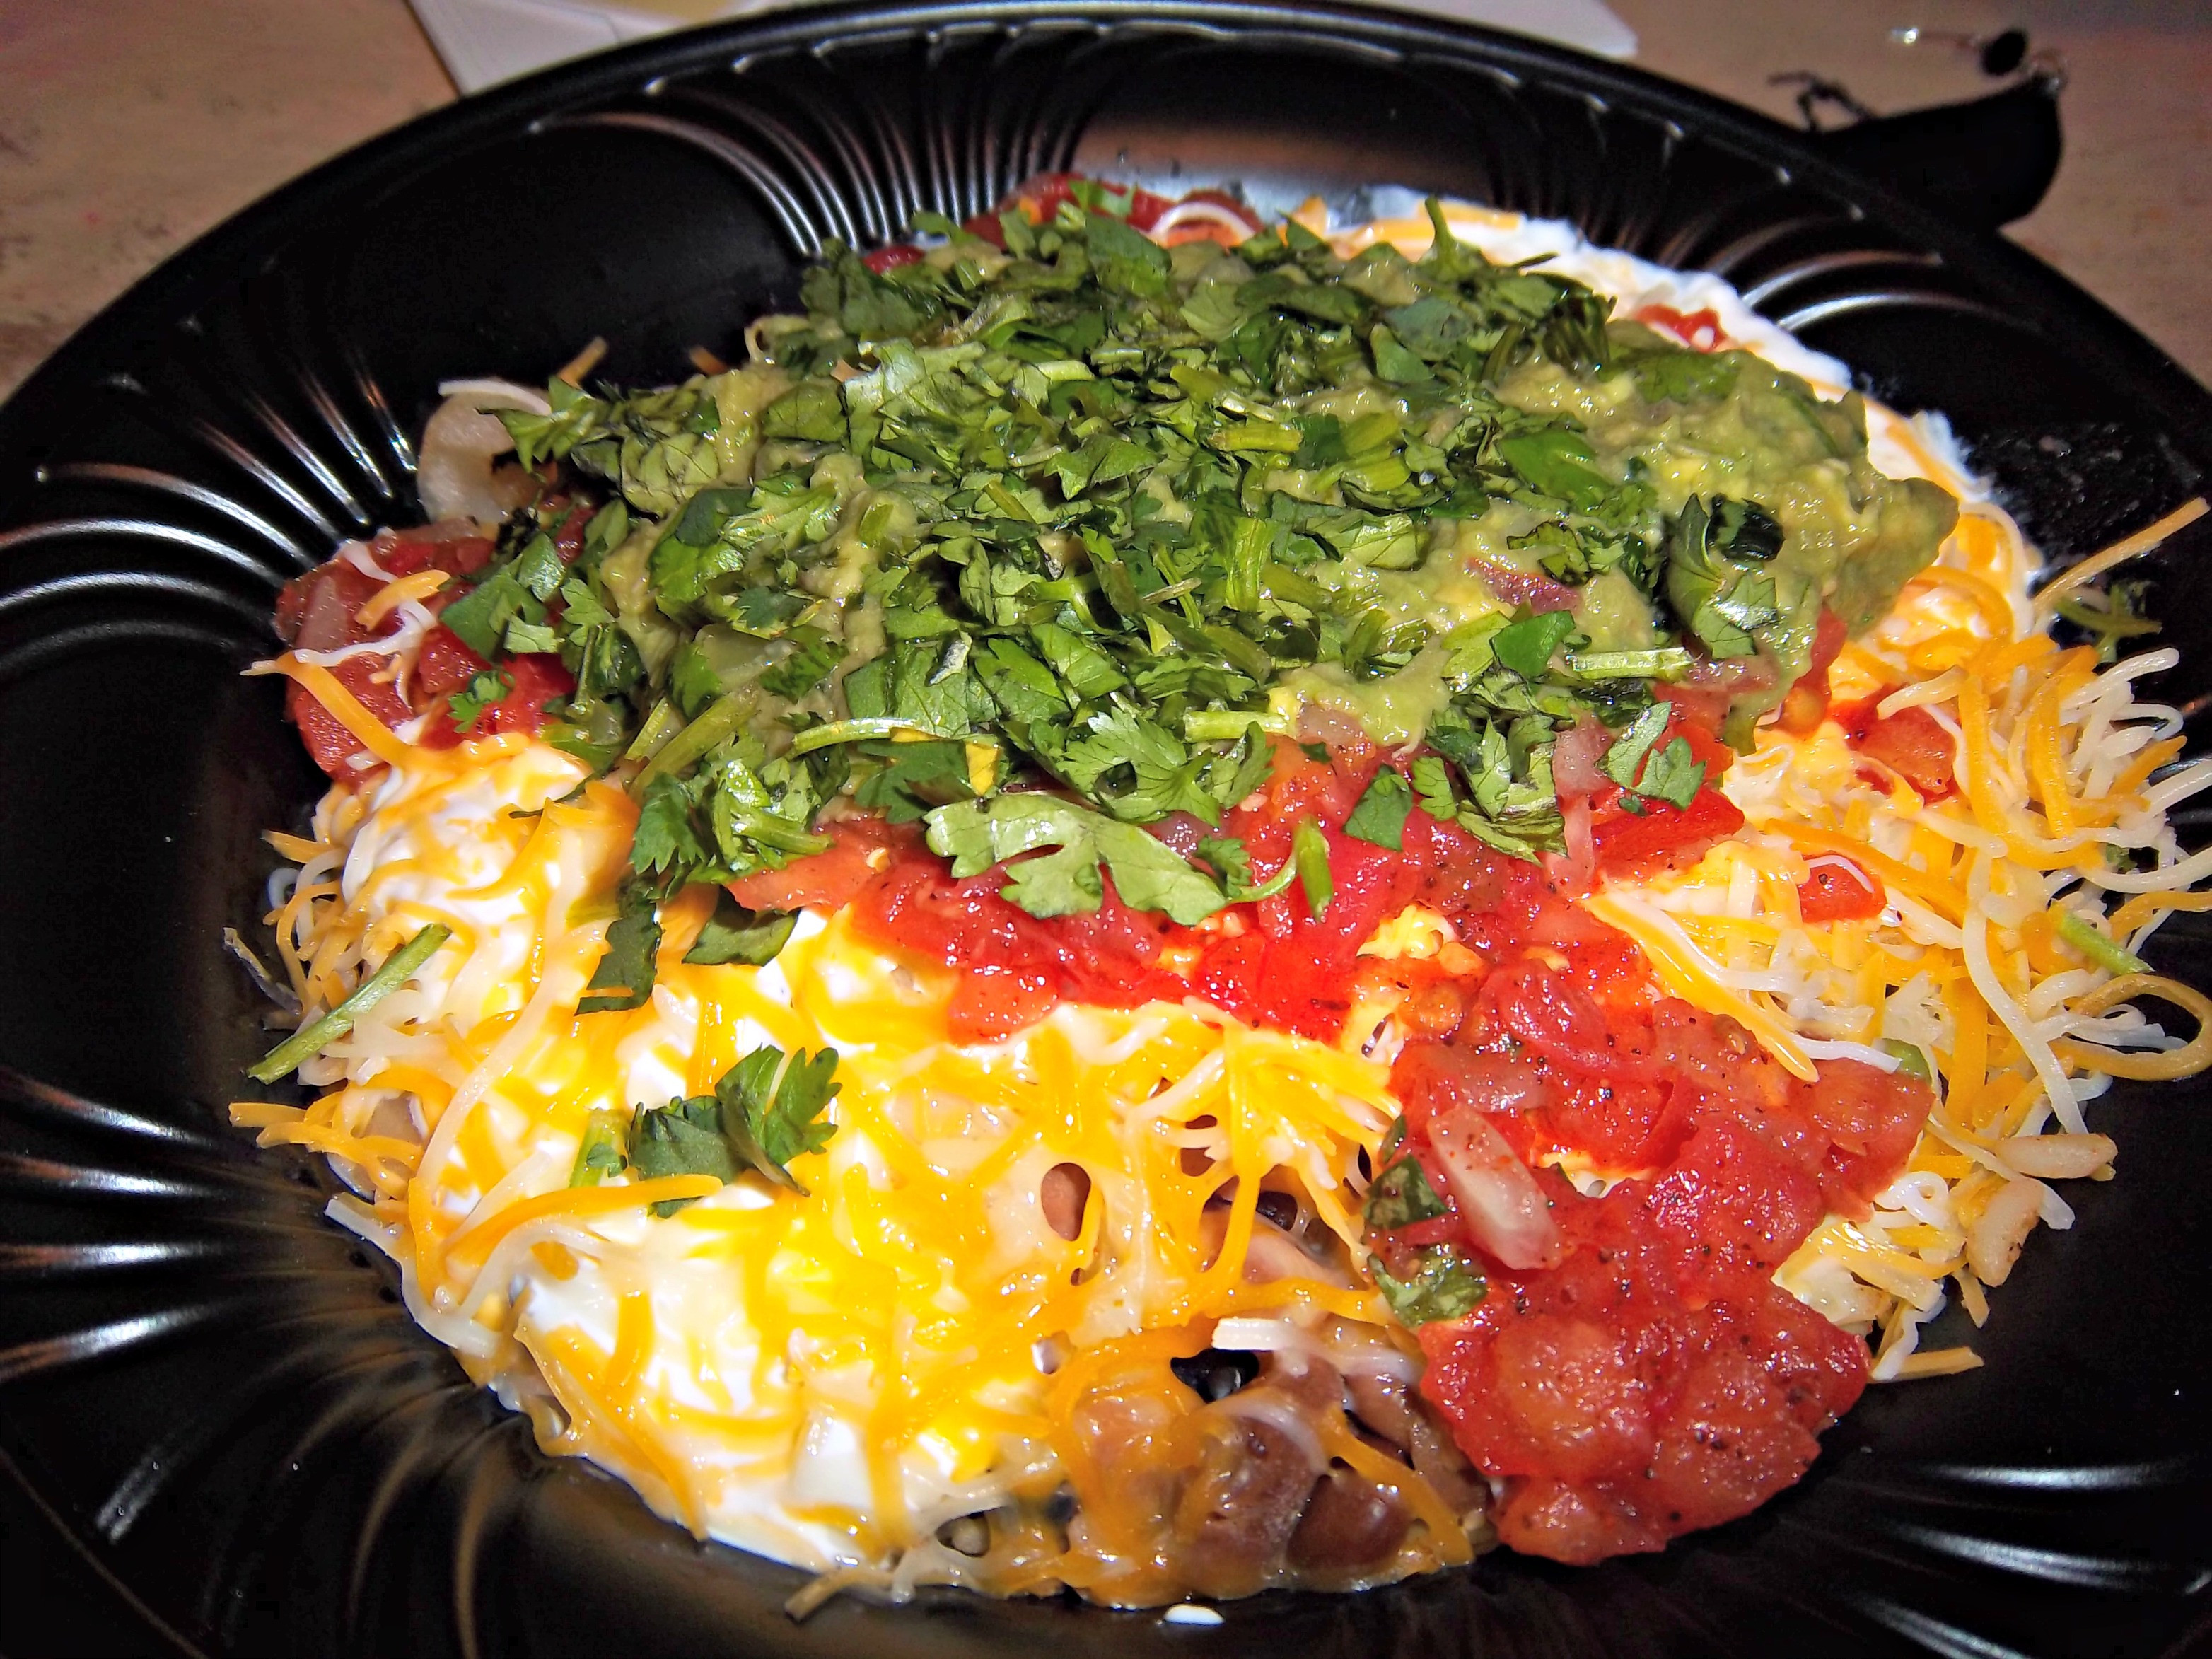 Moes Breakfast Bowls  Moe's Southwest Grill versus Chipotle – The Ravenous Princess